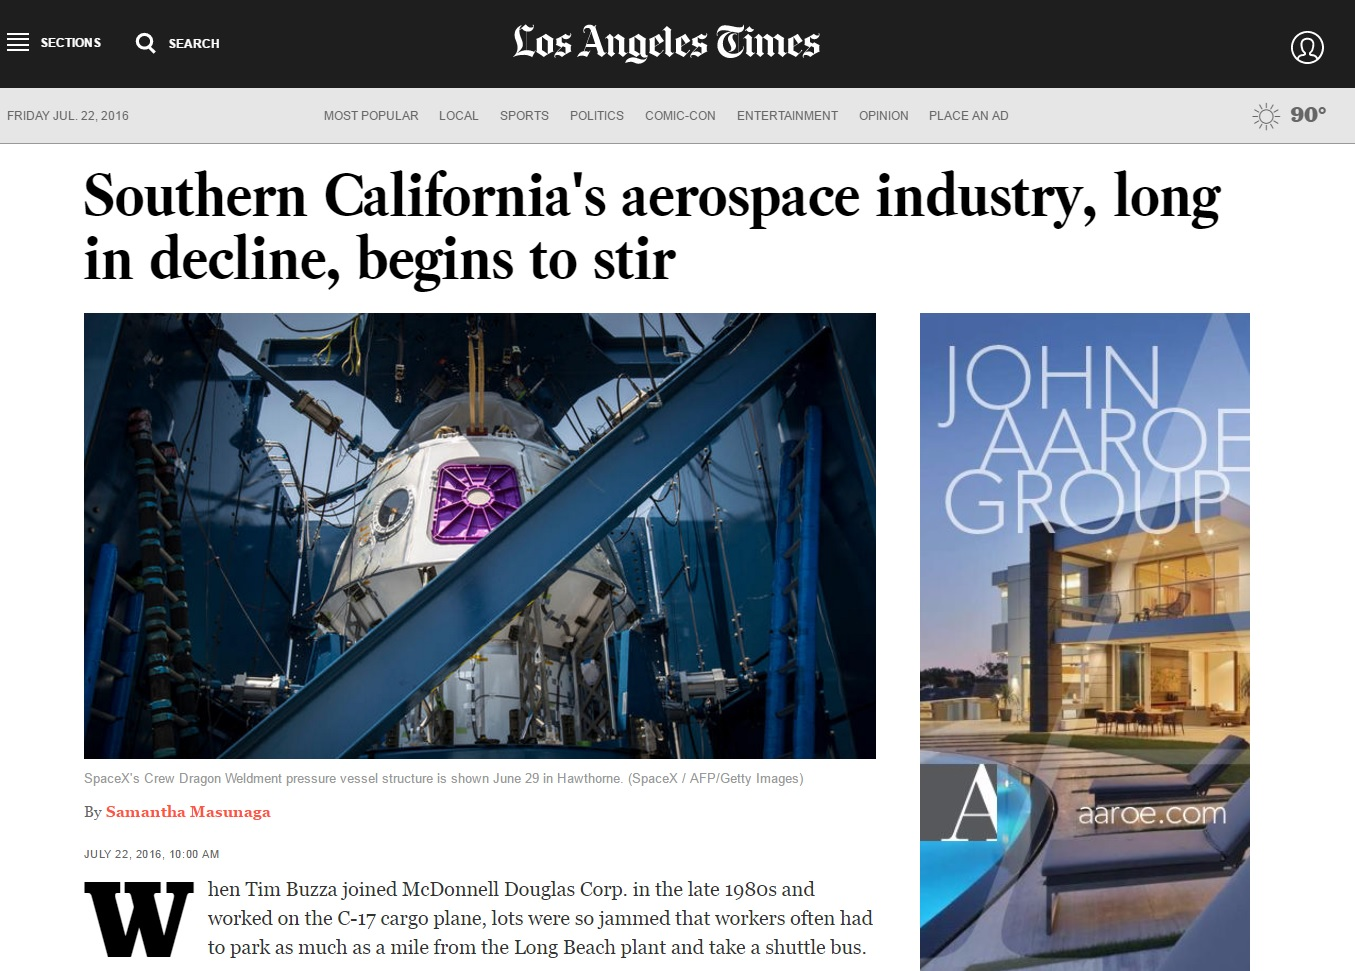 LA Times: SoCal Aerospace Industry Poised to Grow